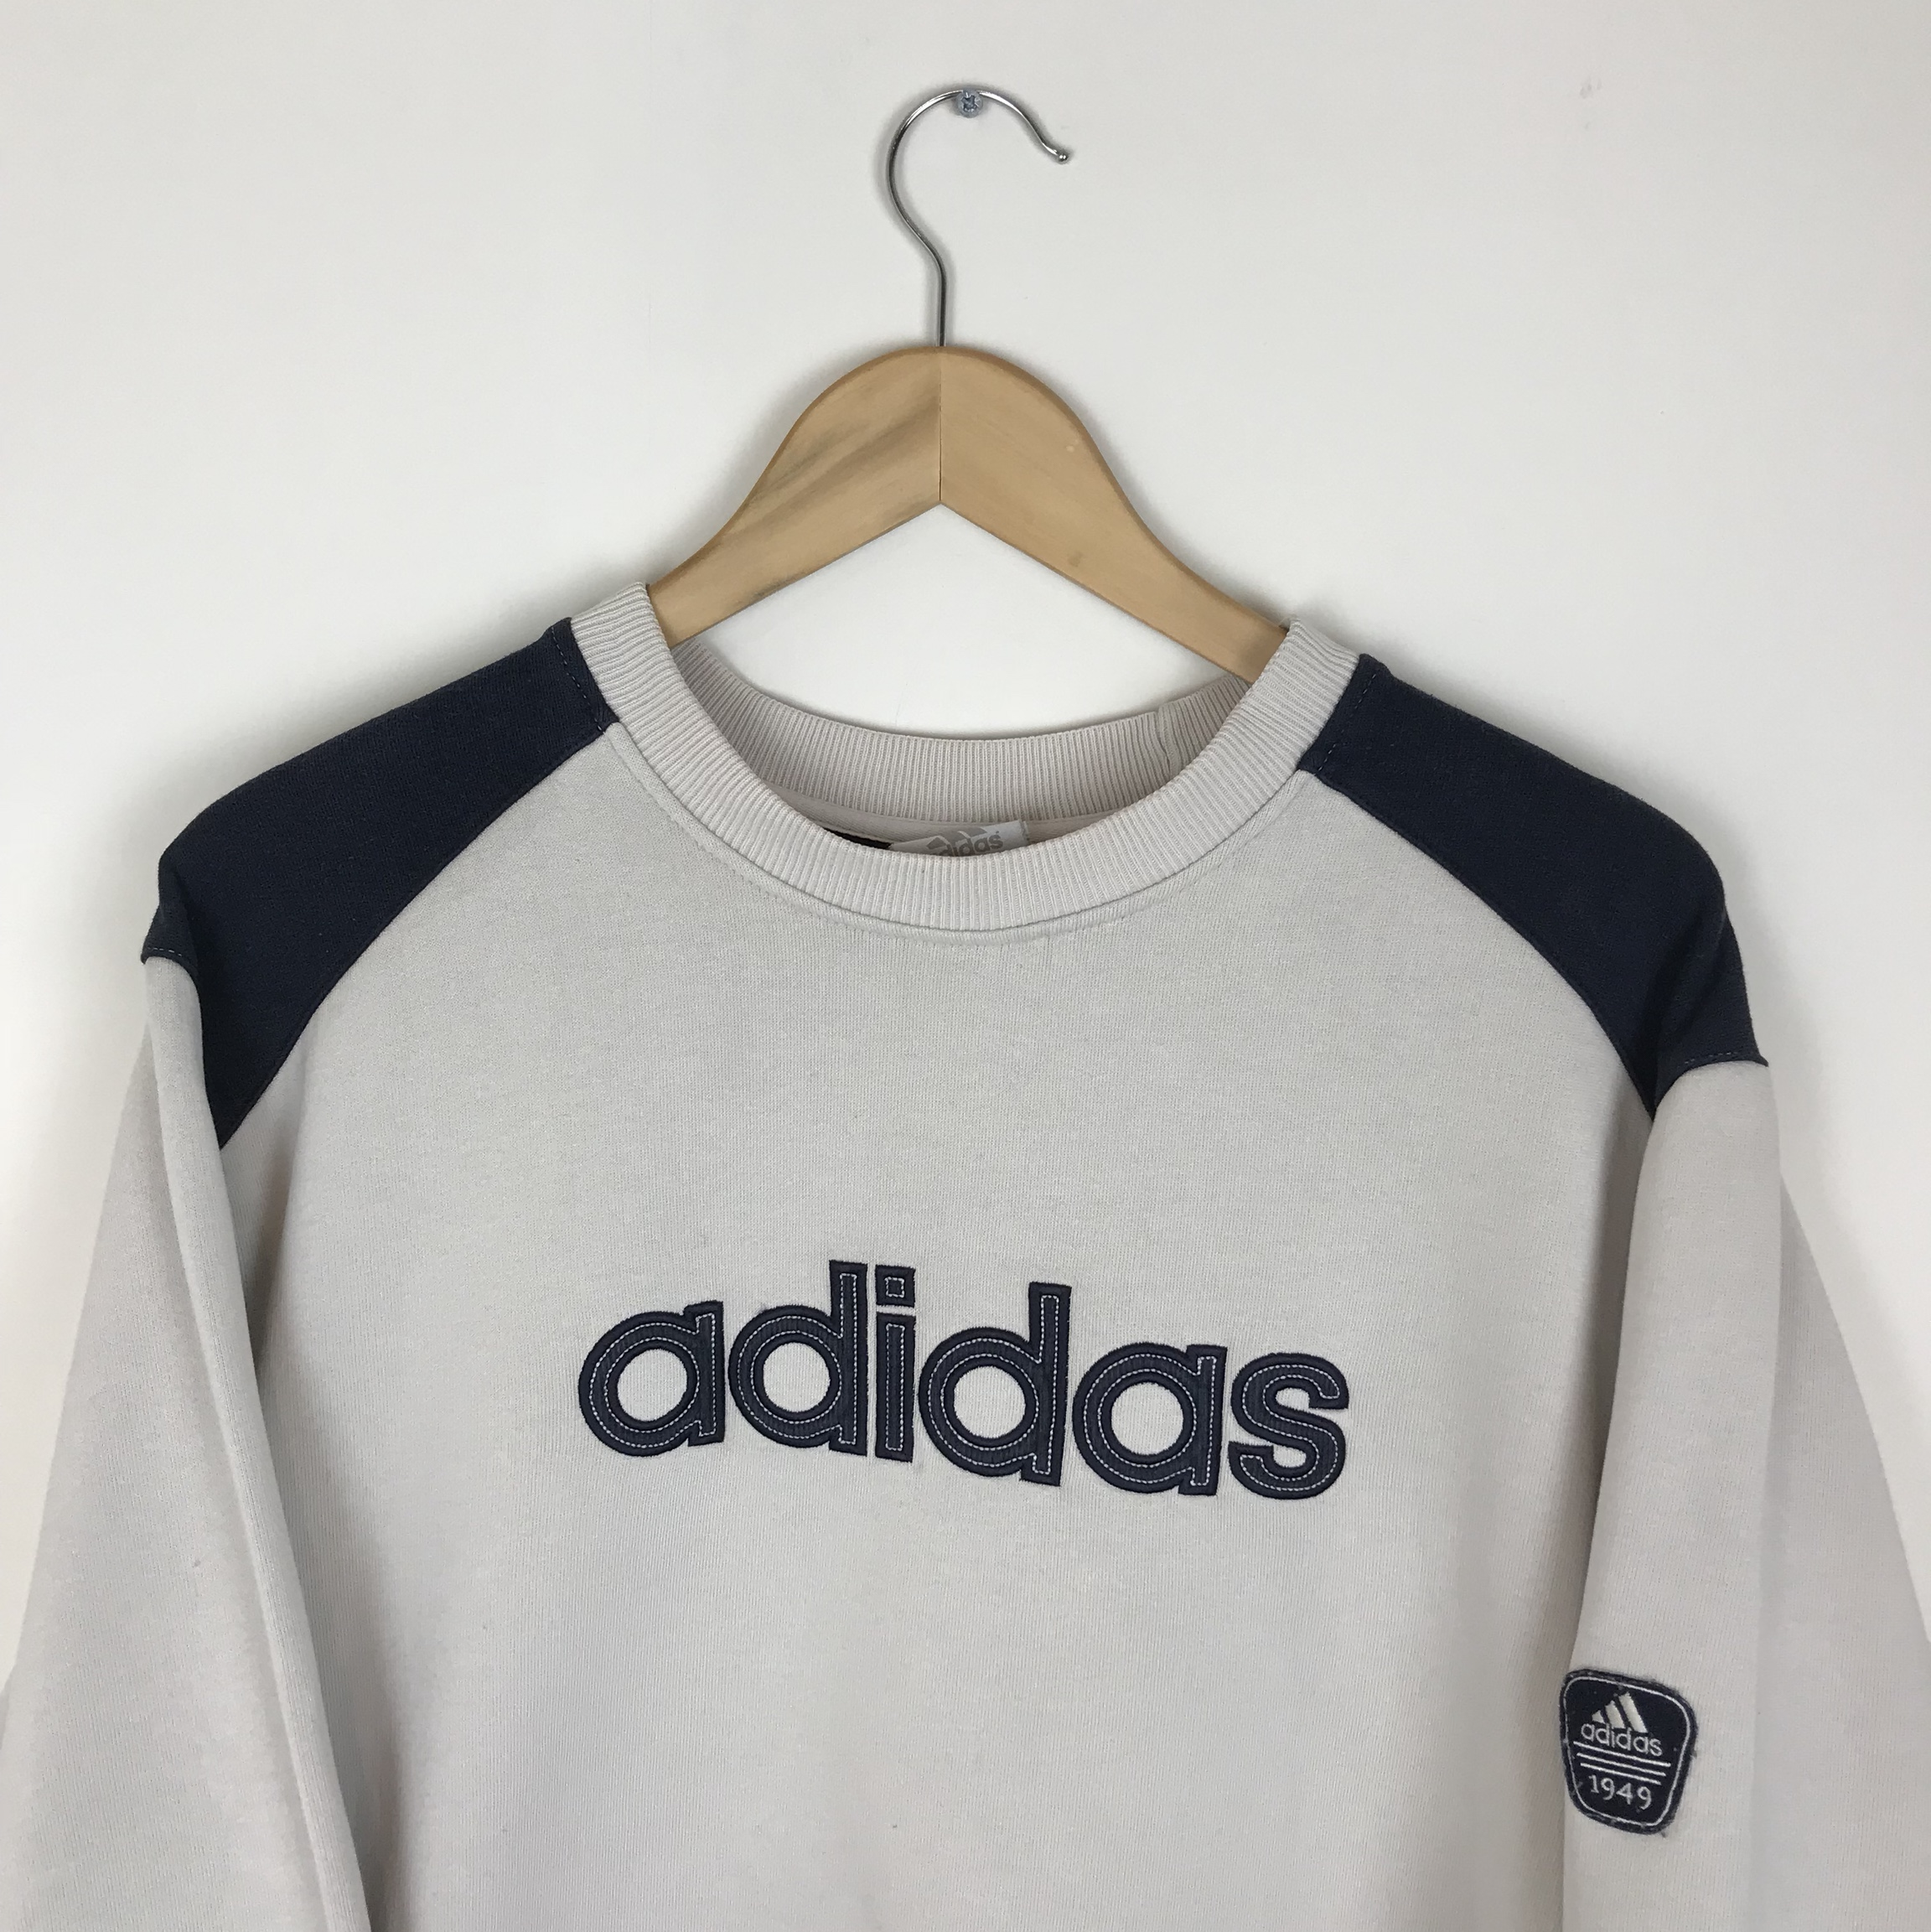 Vintage Adidas Off White and Navy Spellout Crew Neck